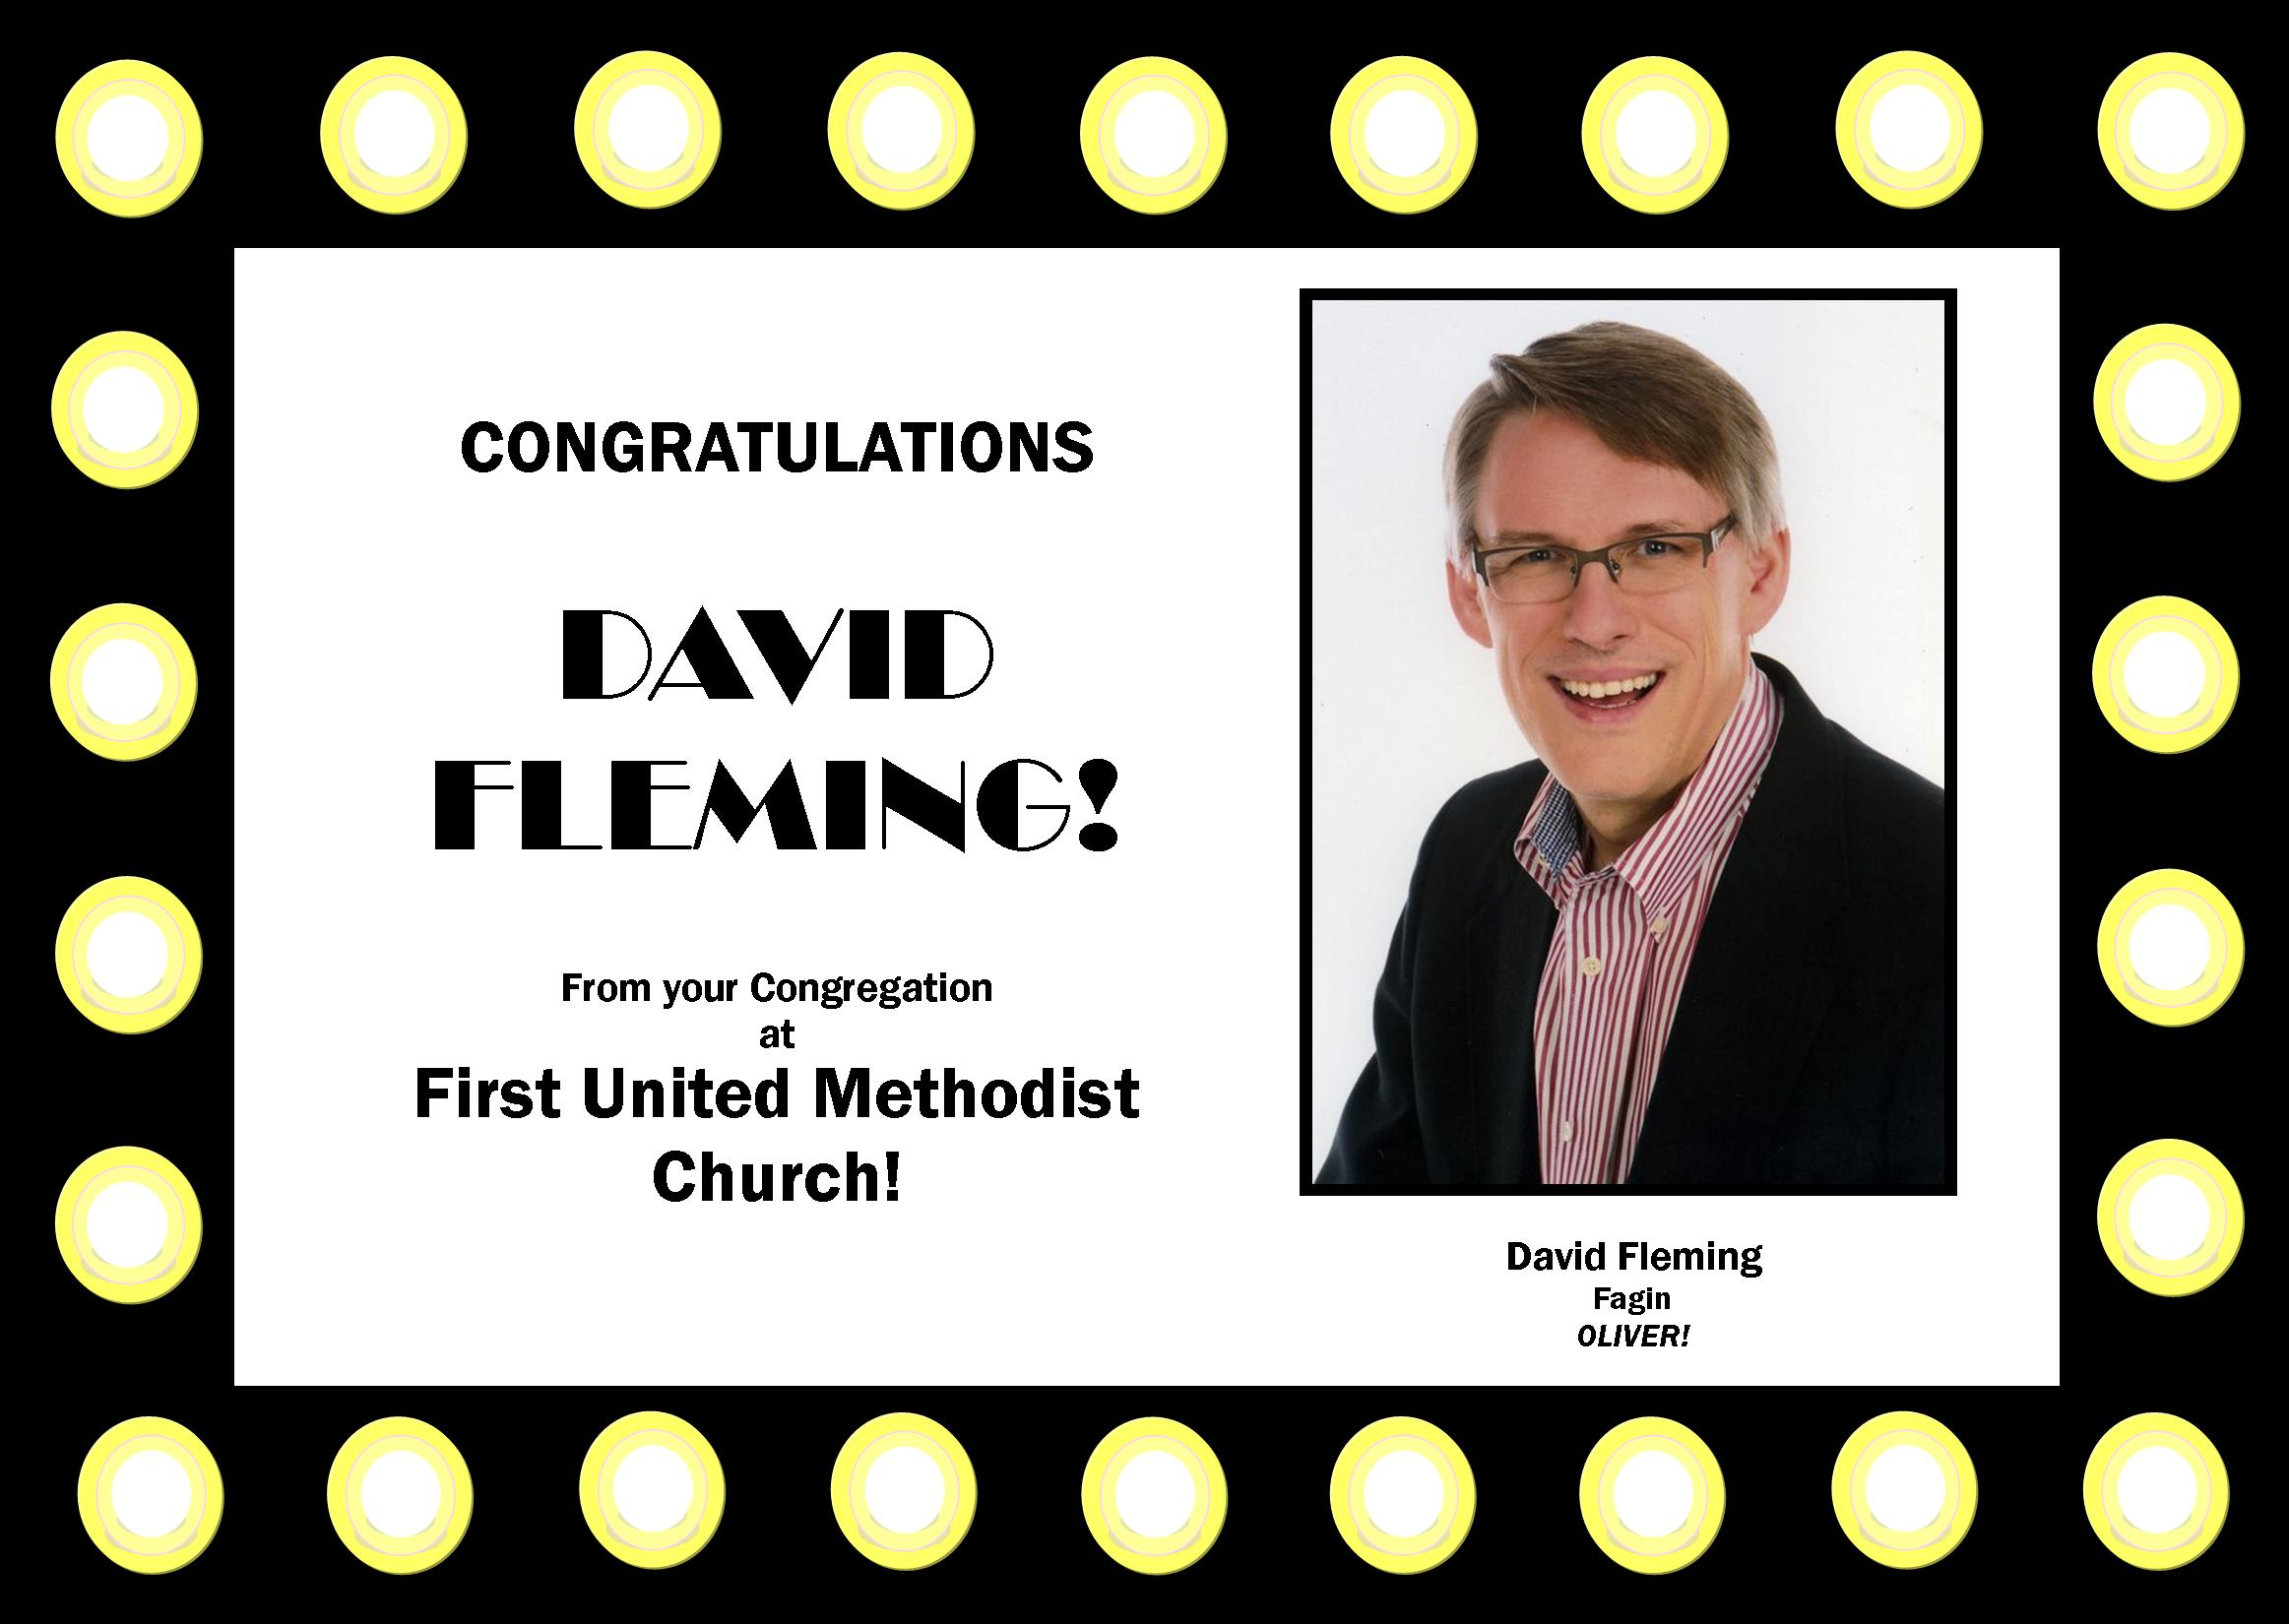 Name%20in%20Lights%20David%20Fleming.jpg